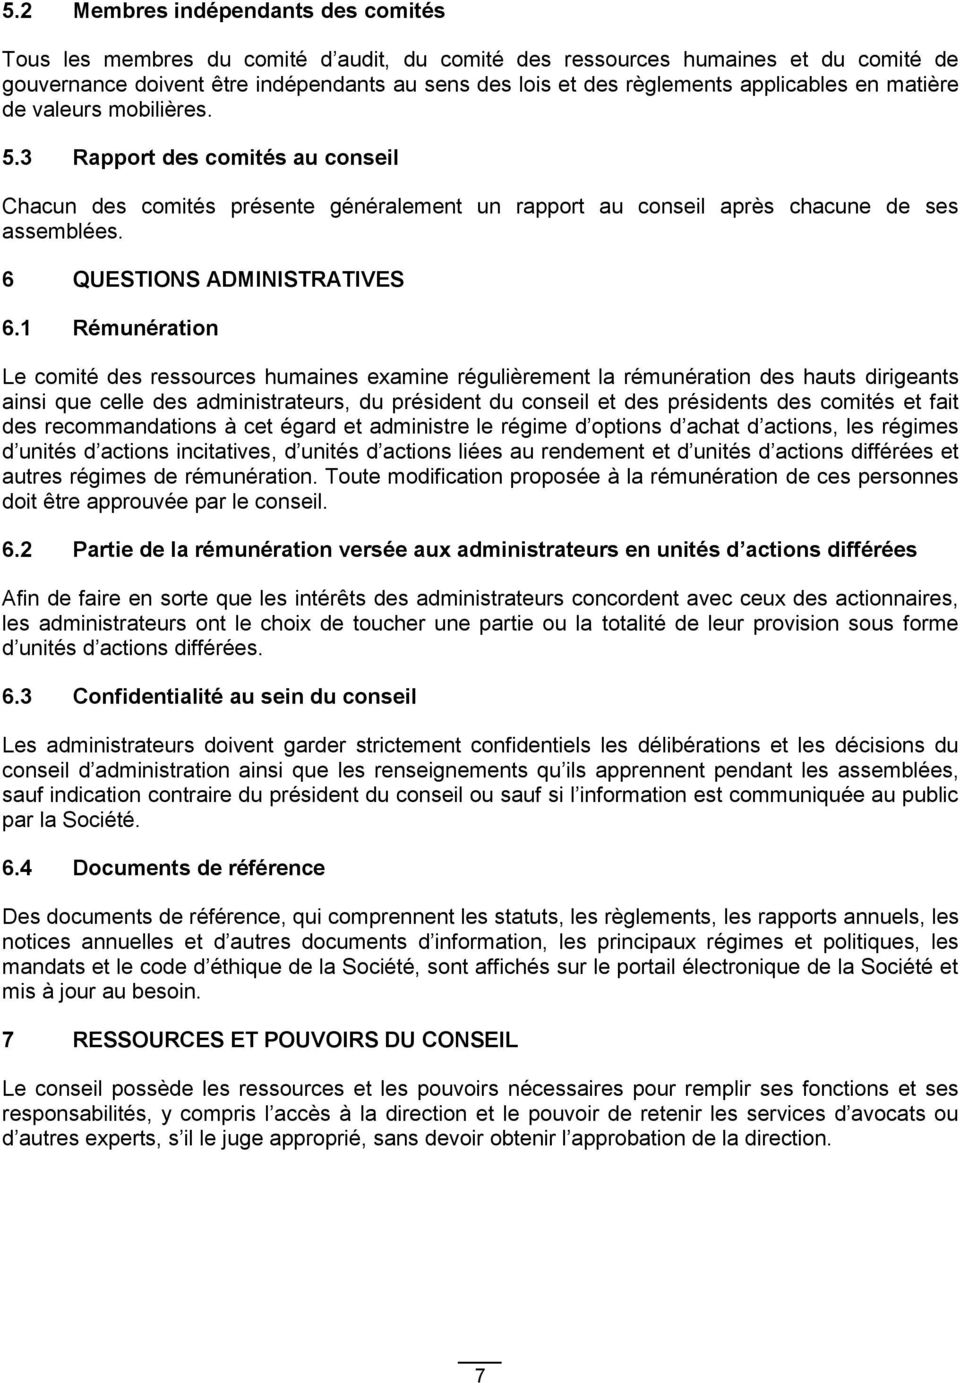 6 QUESTIONS ADMINISTRATIVES 6.